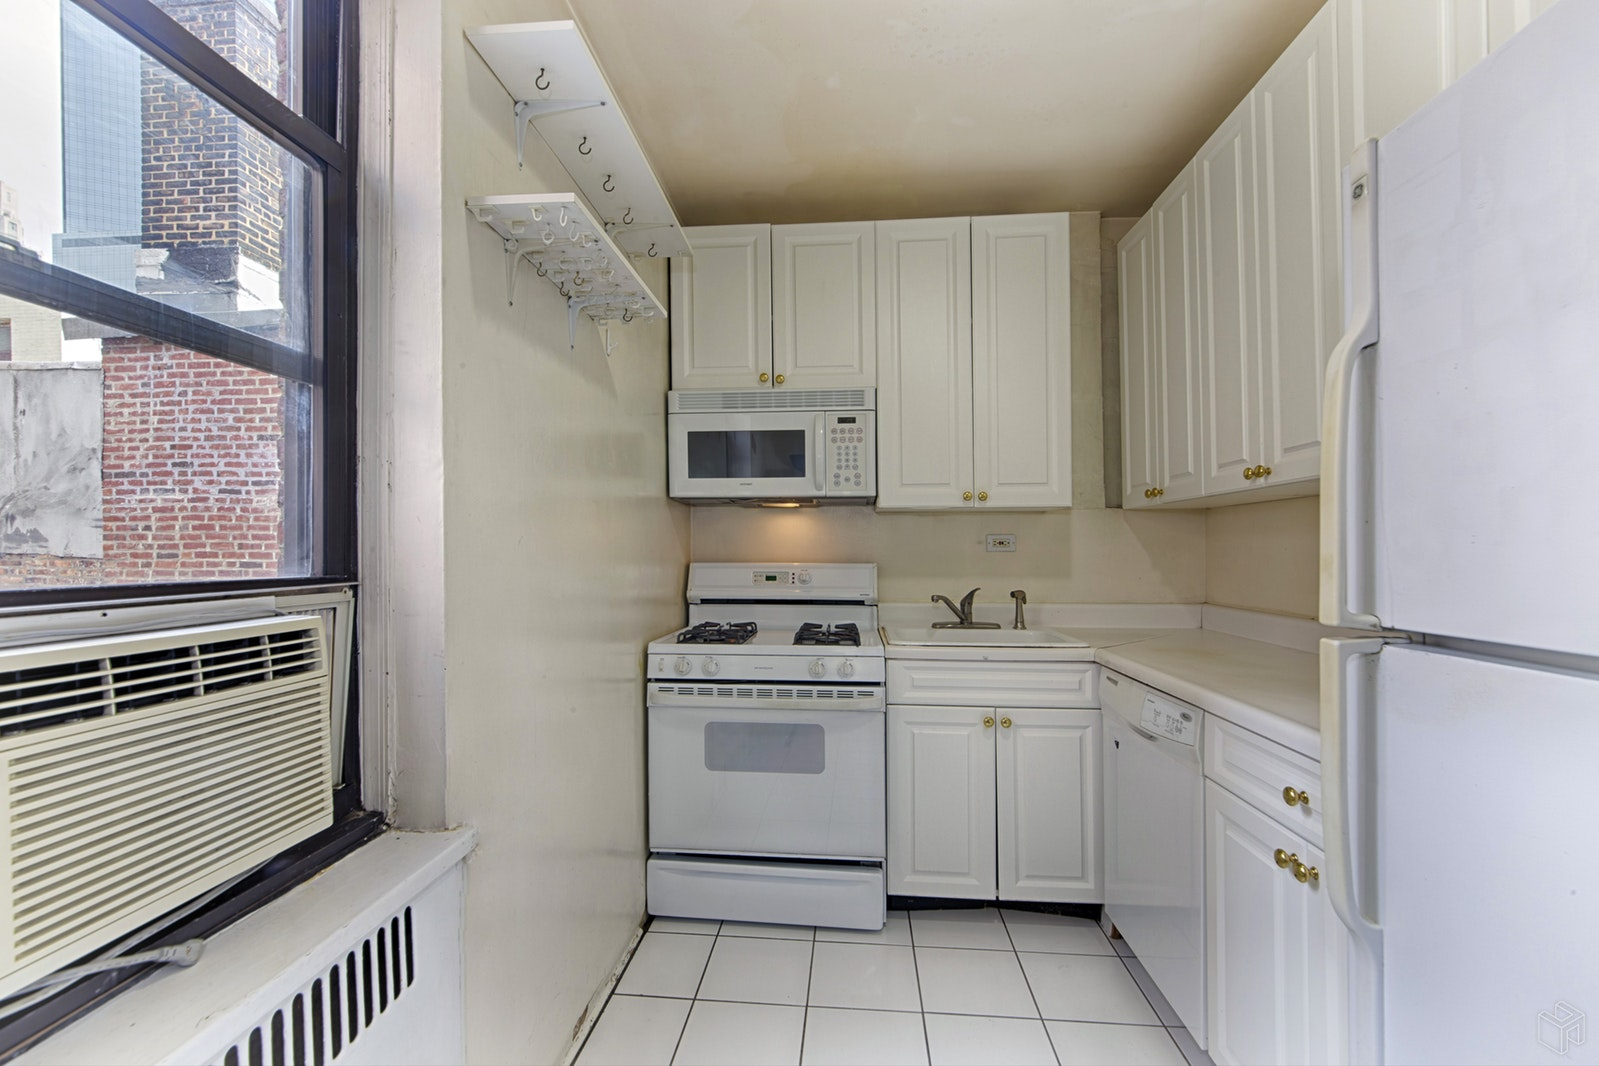 405 WEST 57TH STREET 6F, Midtown West, $599,000, Web #: 19016766